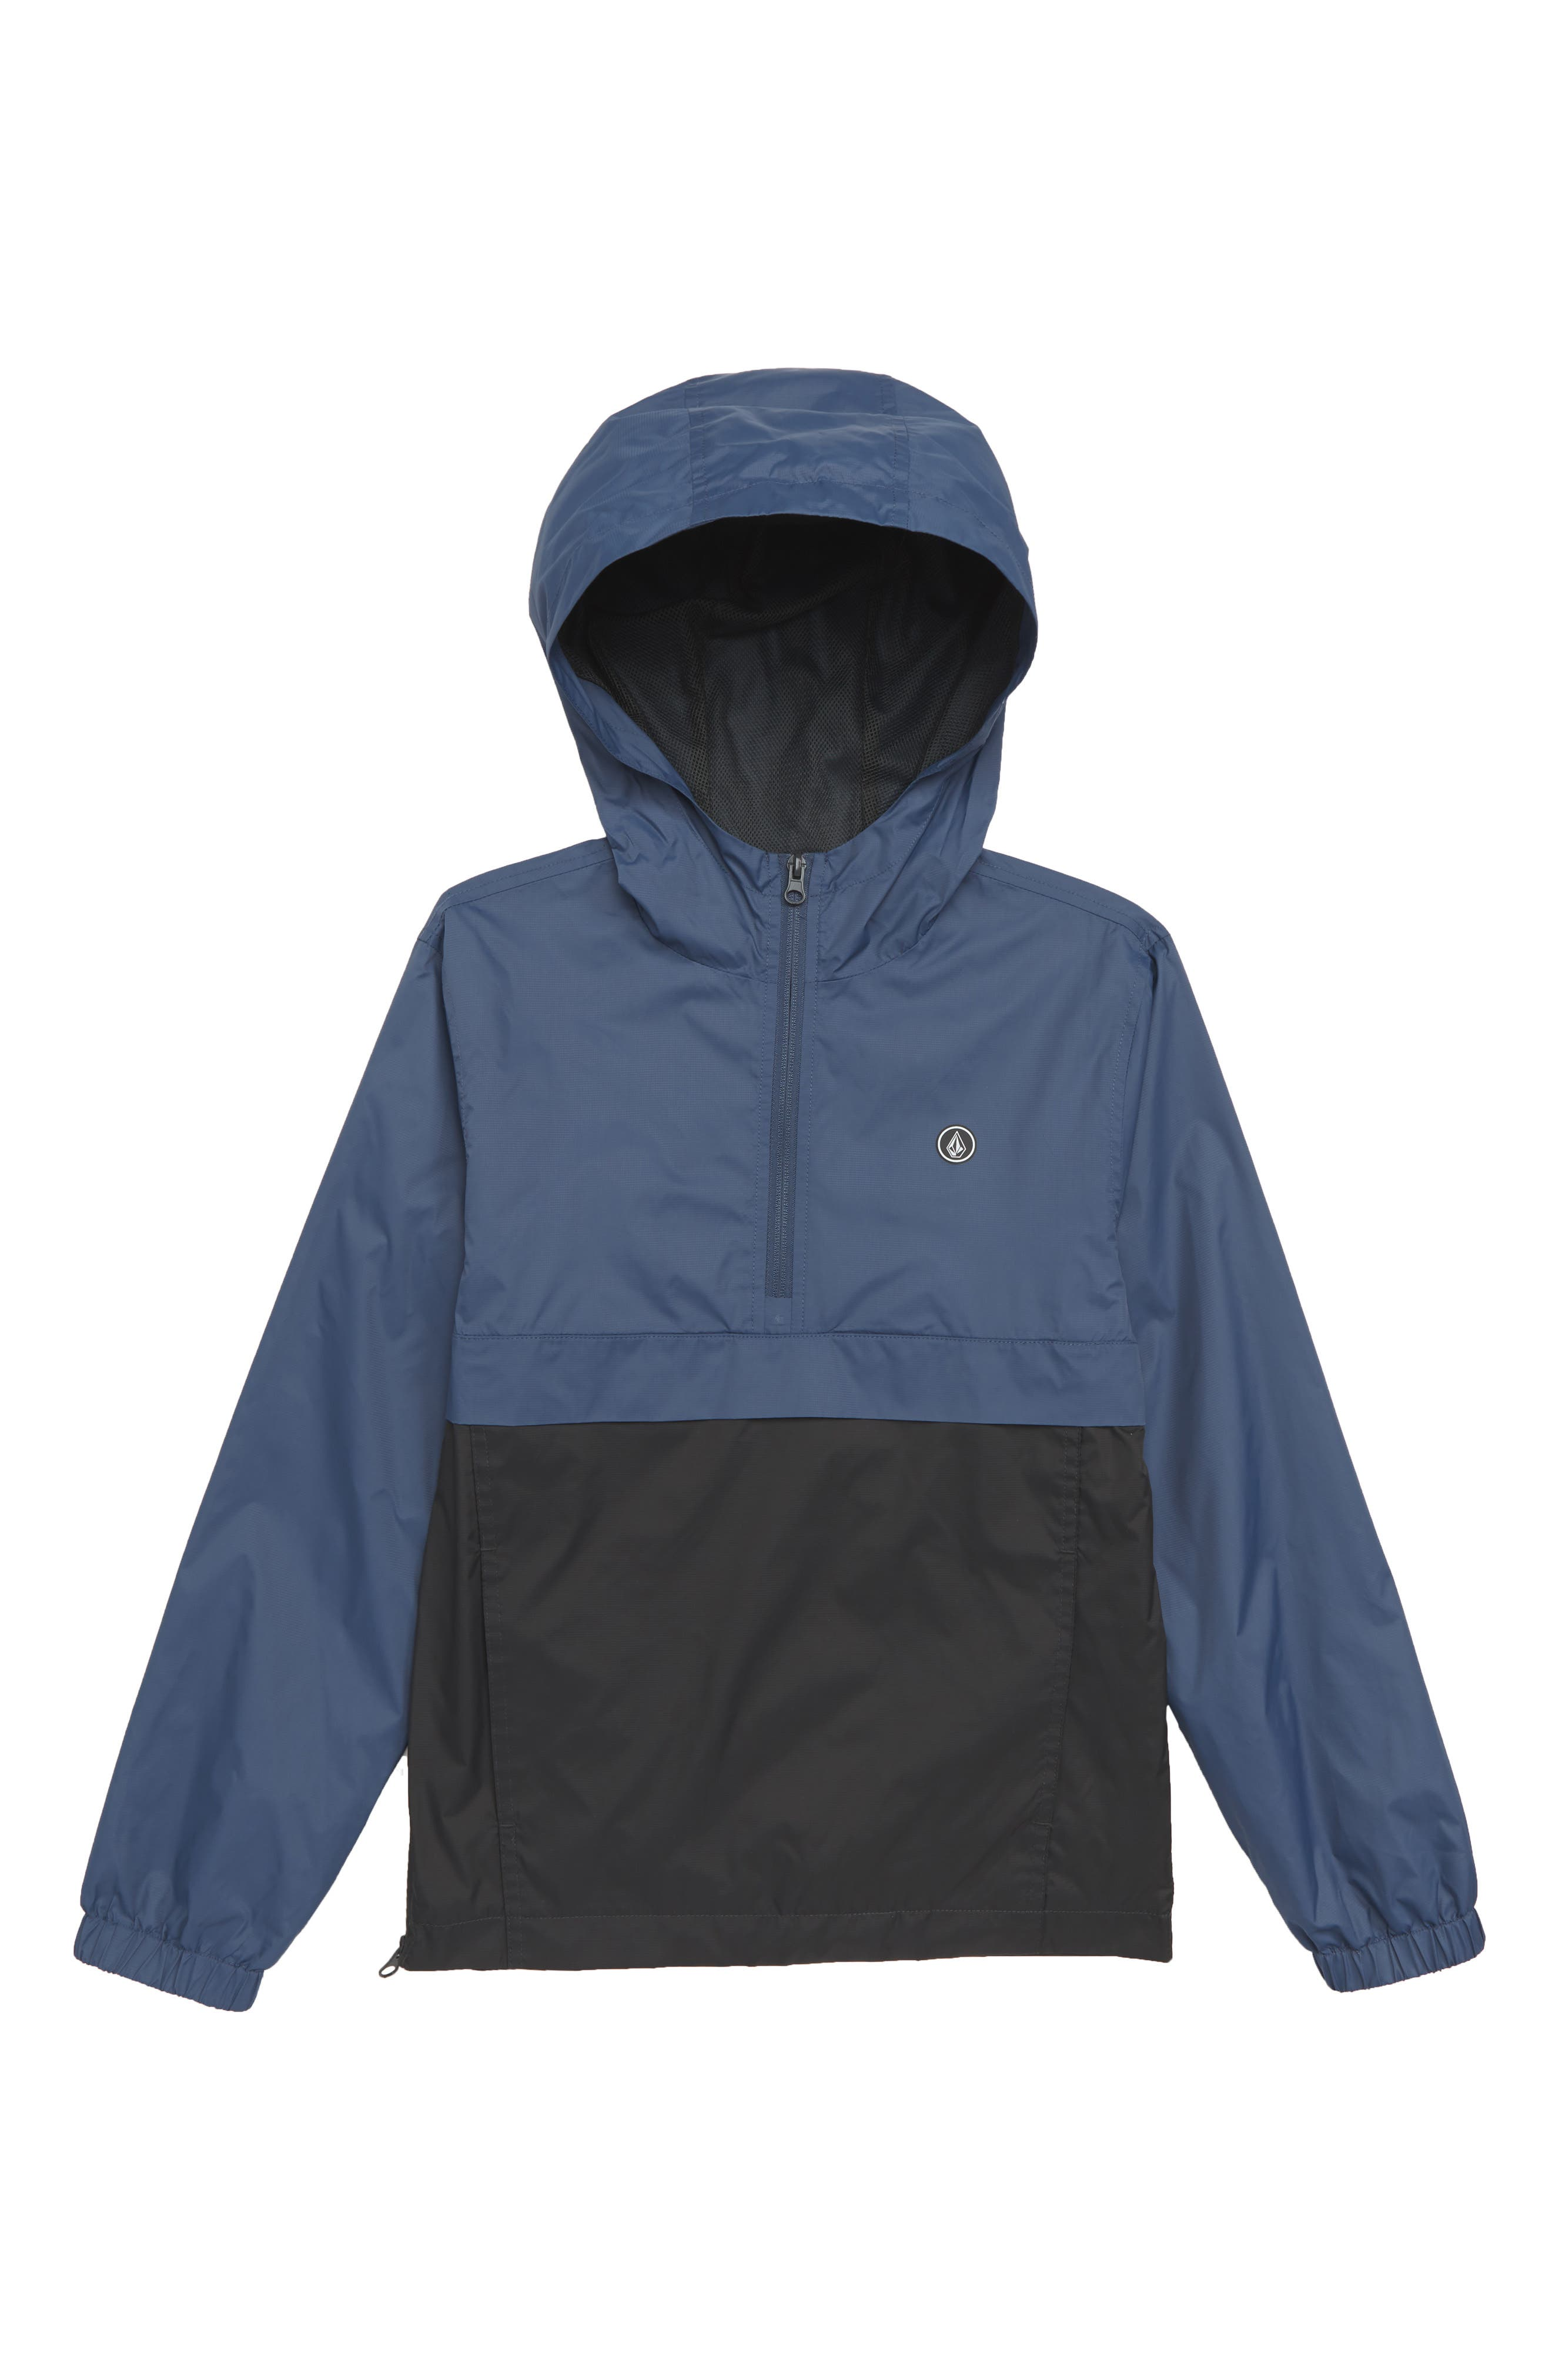 Halfmont Hooded Pullover,                         Main,                         color, DEEP BLUE